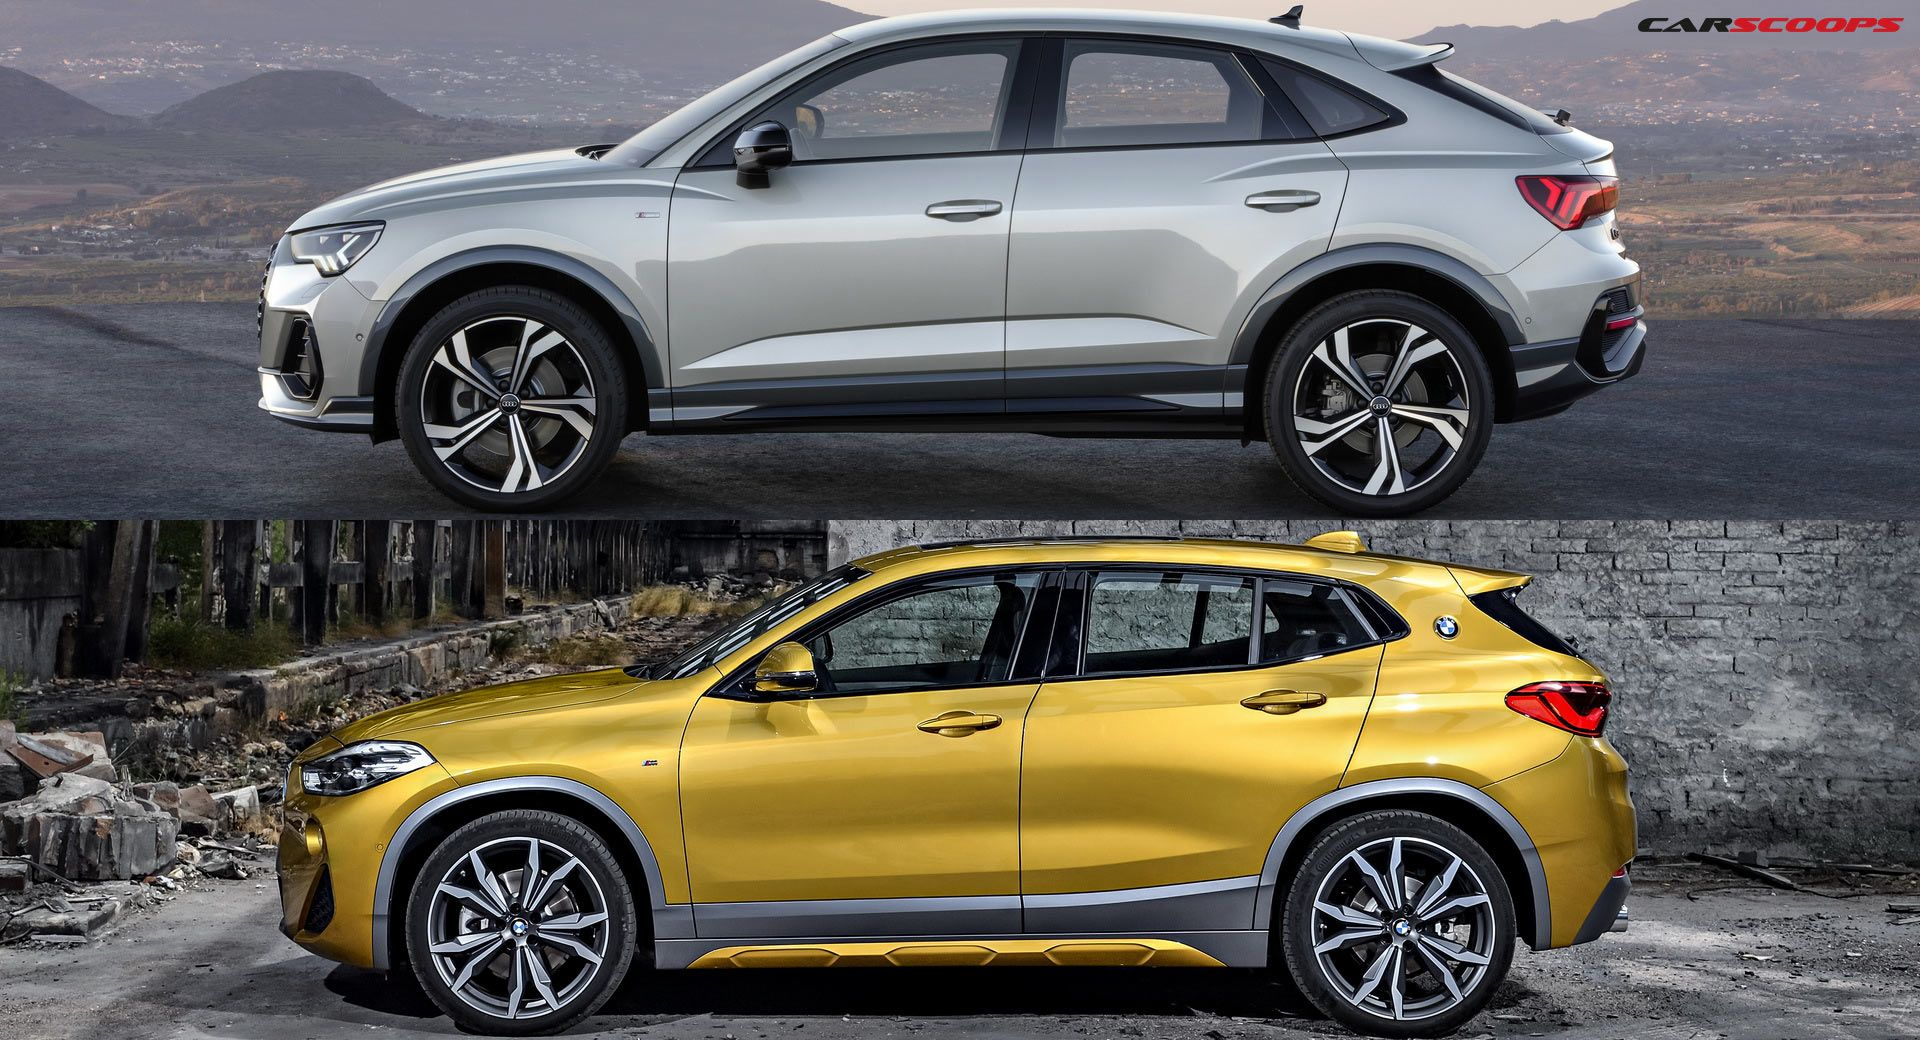 Audi Q3 Sportback Or Bmw X2 We Compare Them You Tell Us Which One You D Go For Carscoops Audi Q3 Audi Bmw